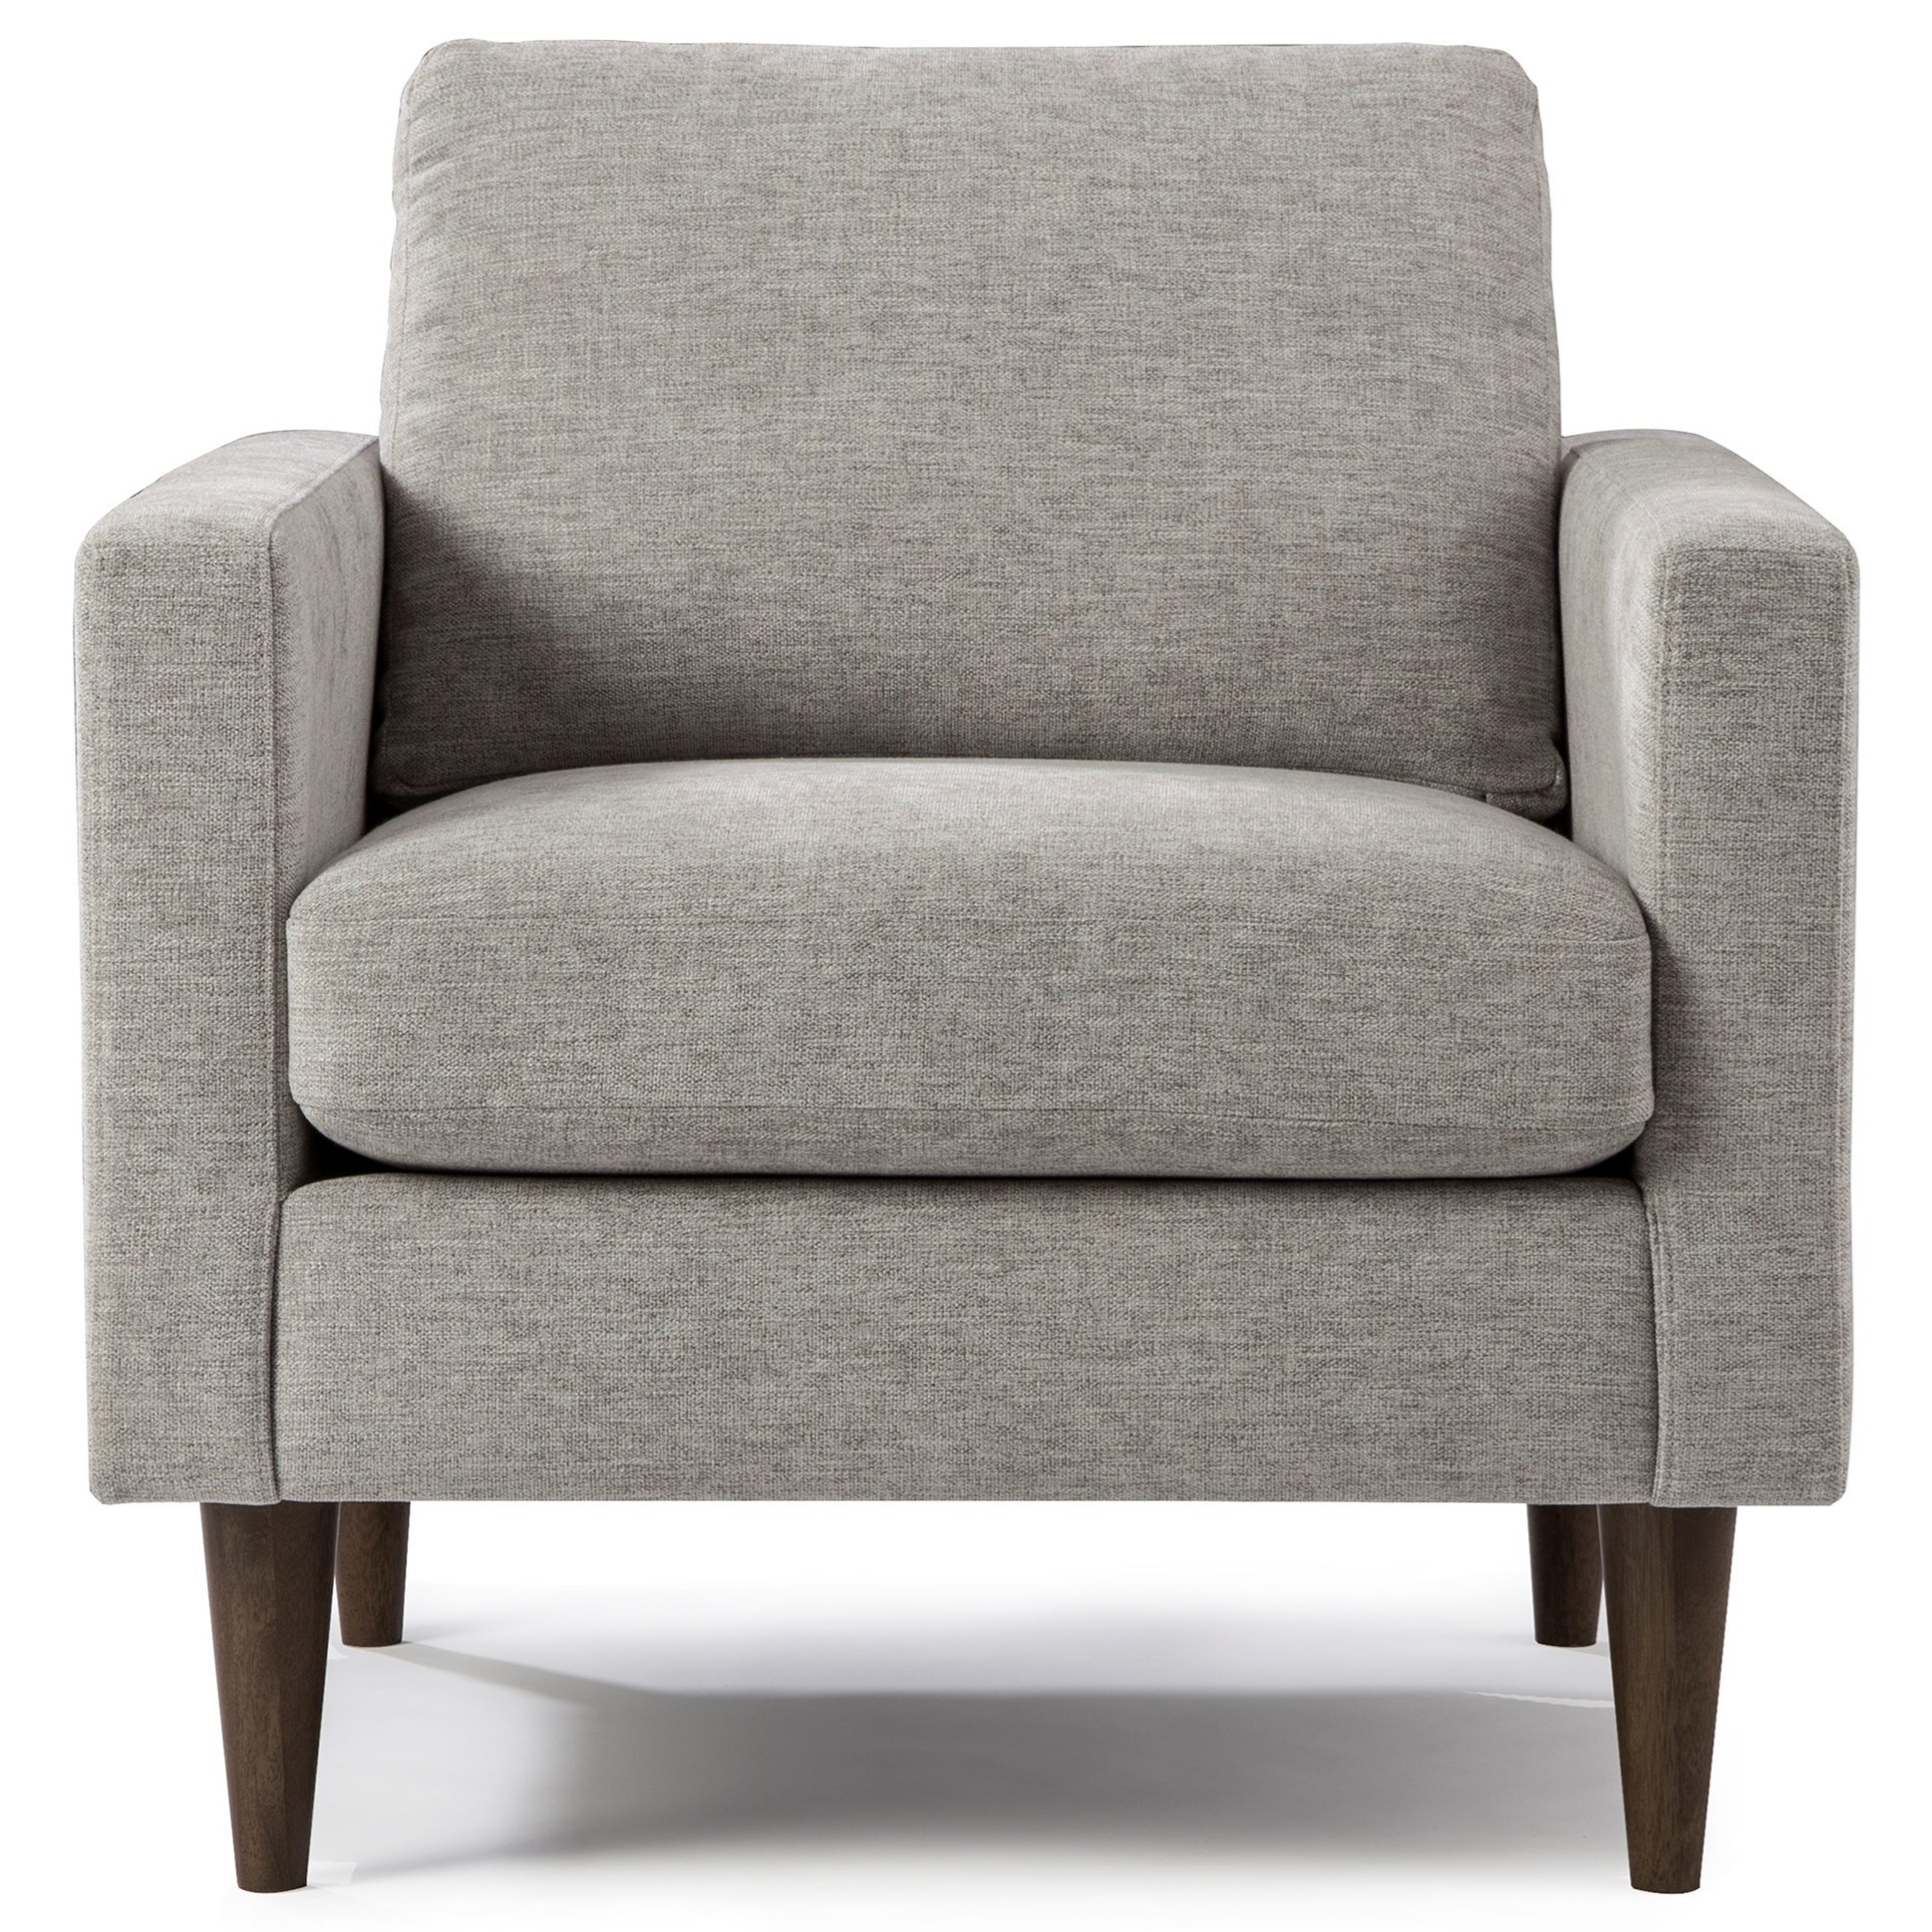 Trafton Chair by Best Home Furnishings at Saugerties Furniture Mart